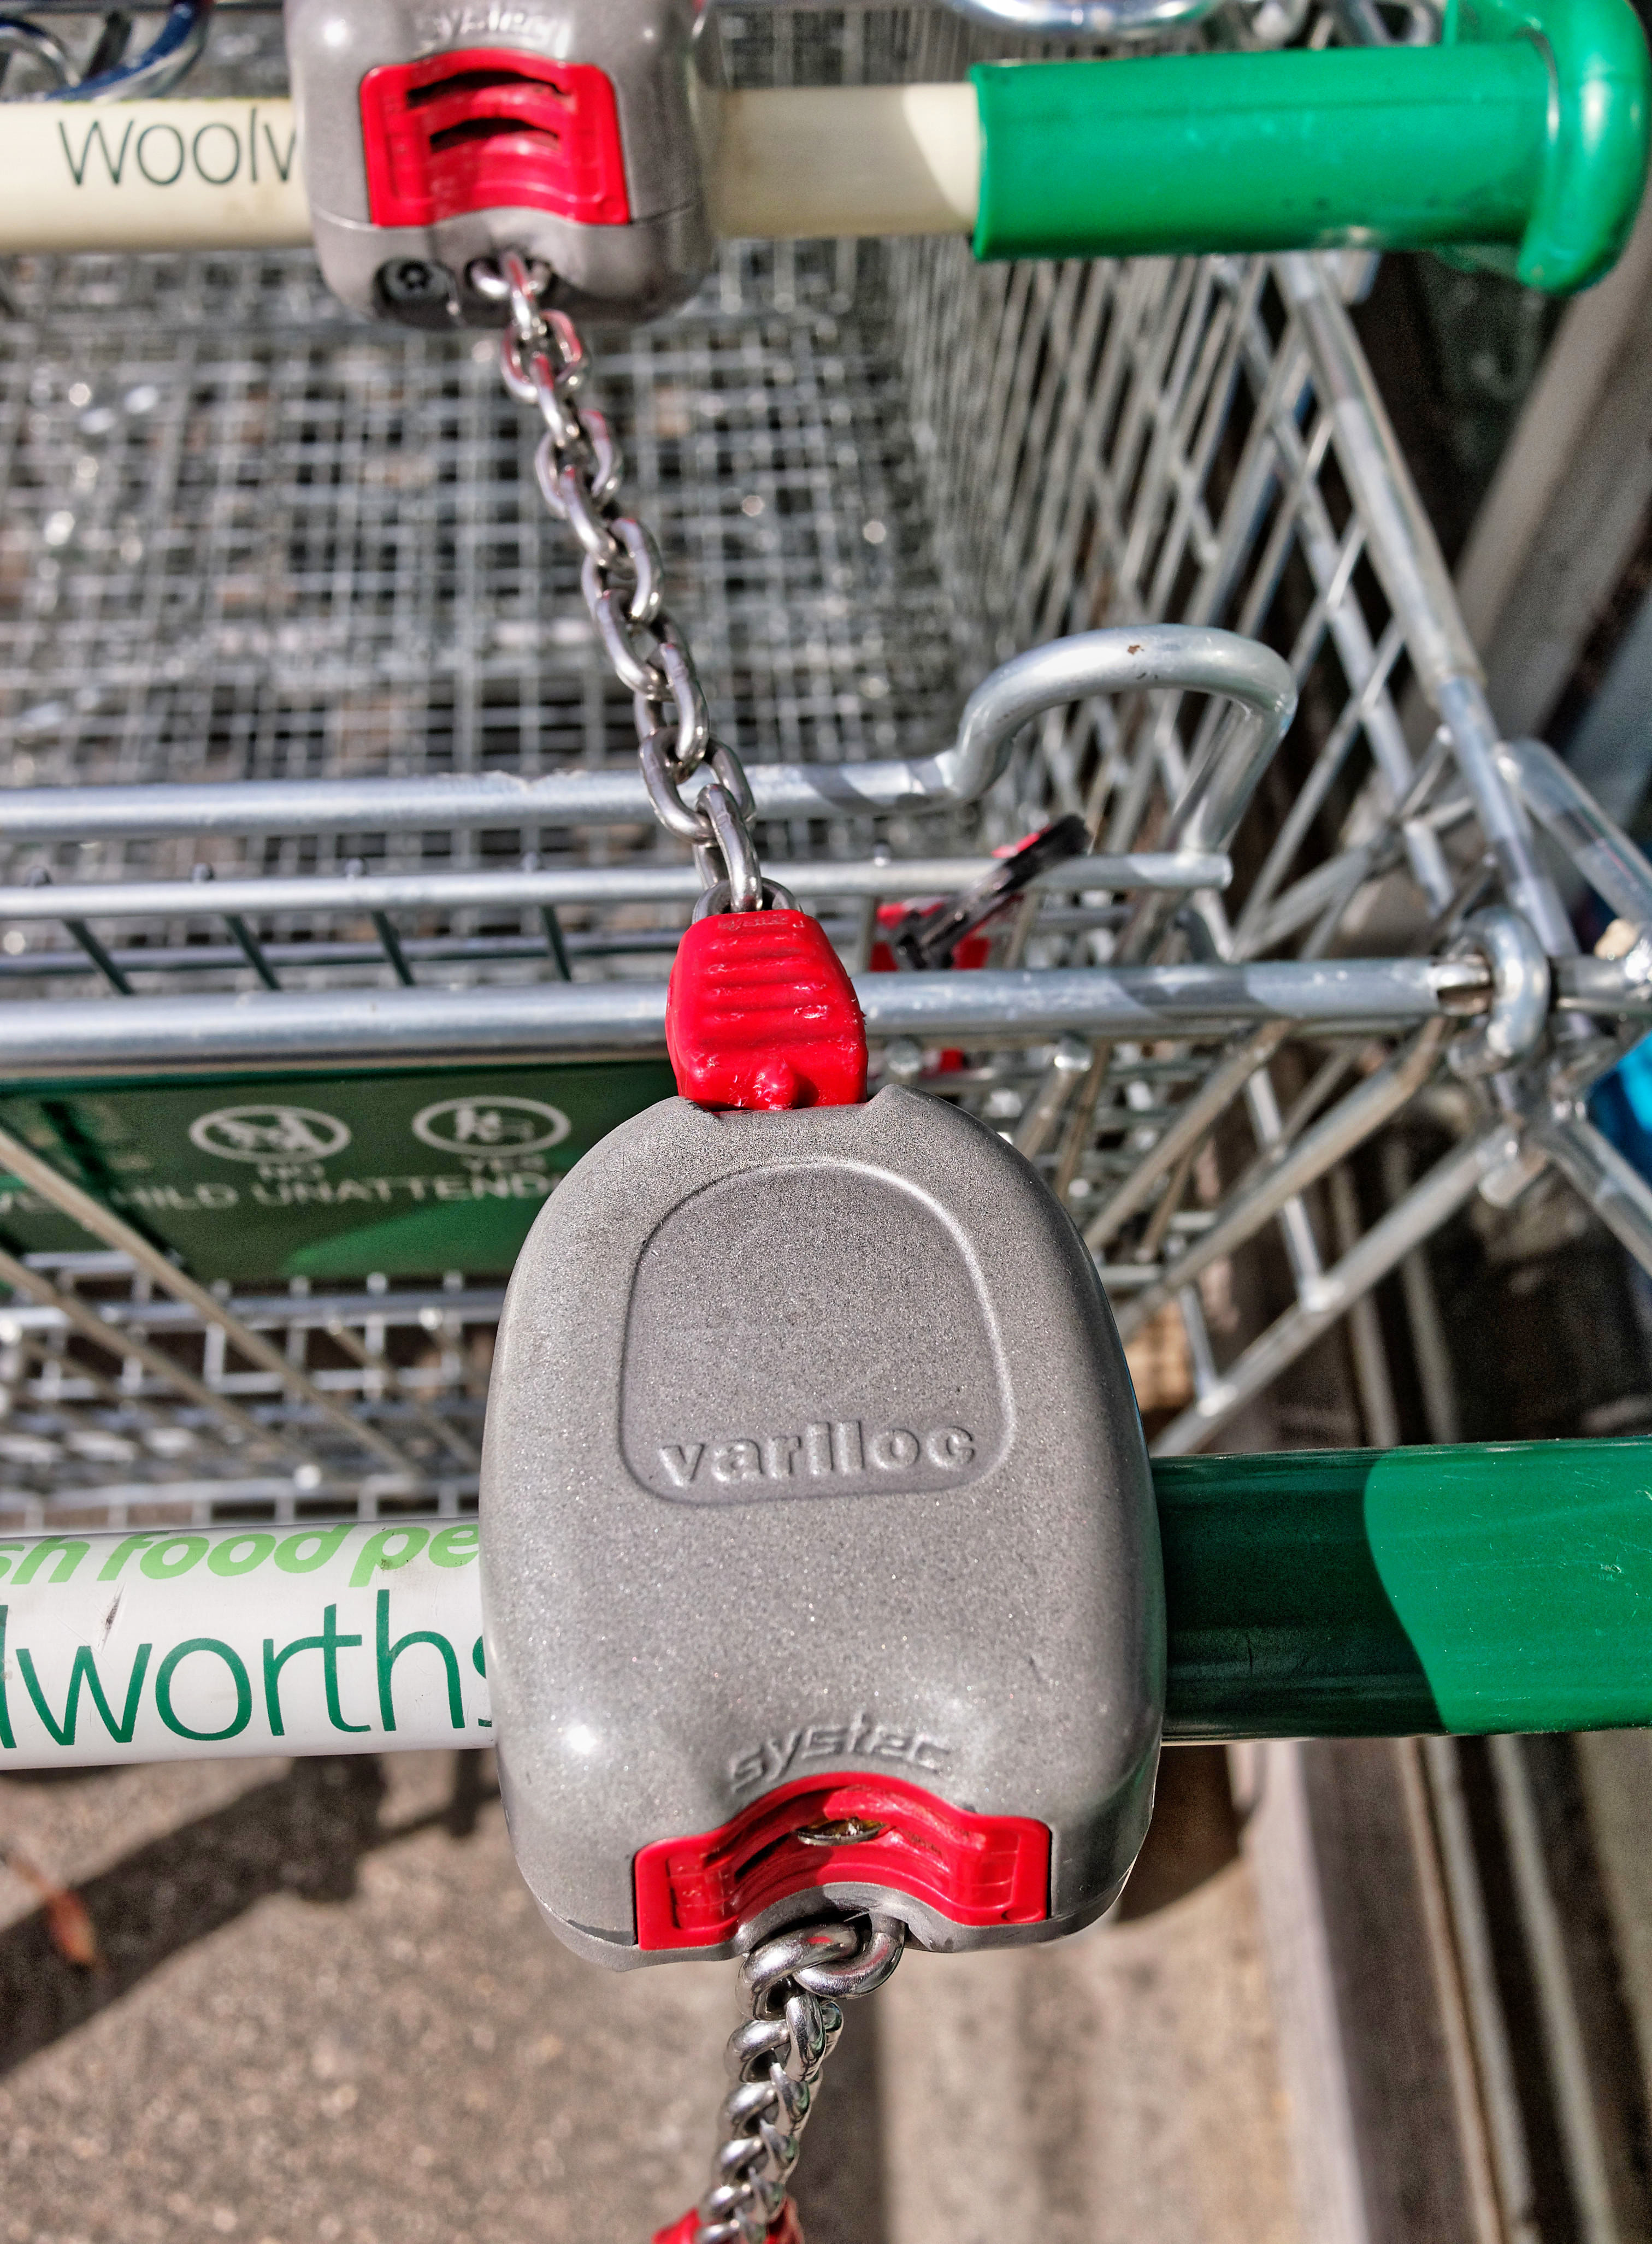 Shopping-trolley.jpeg